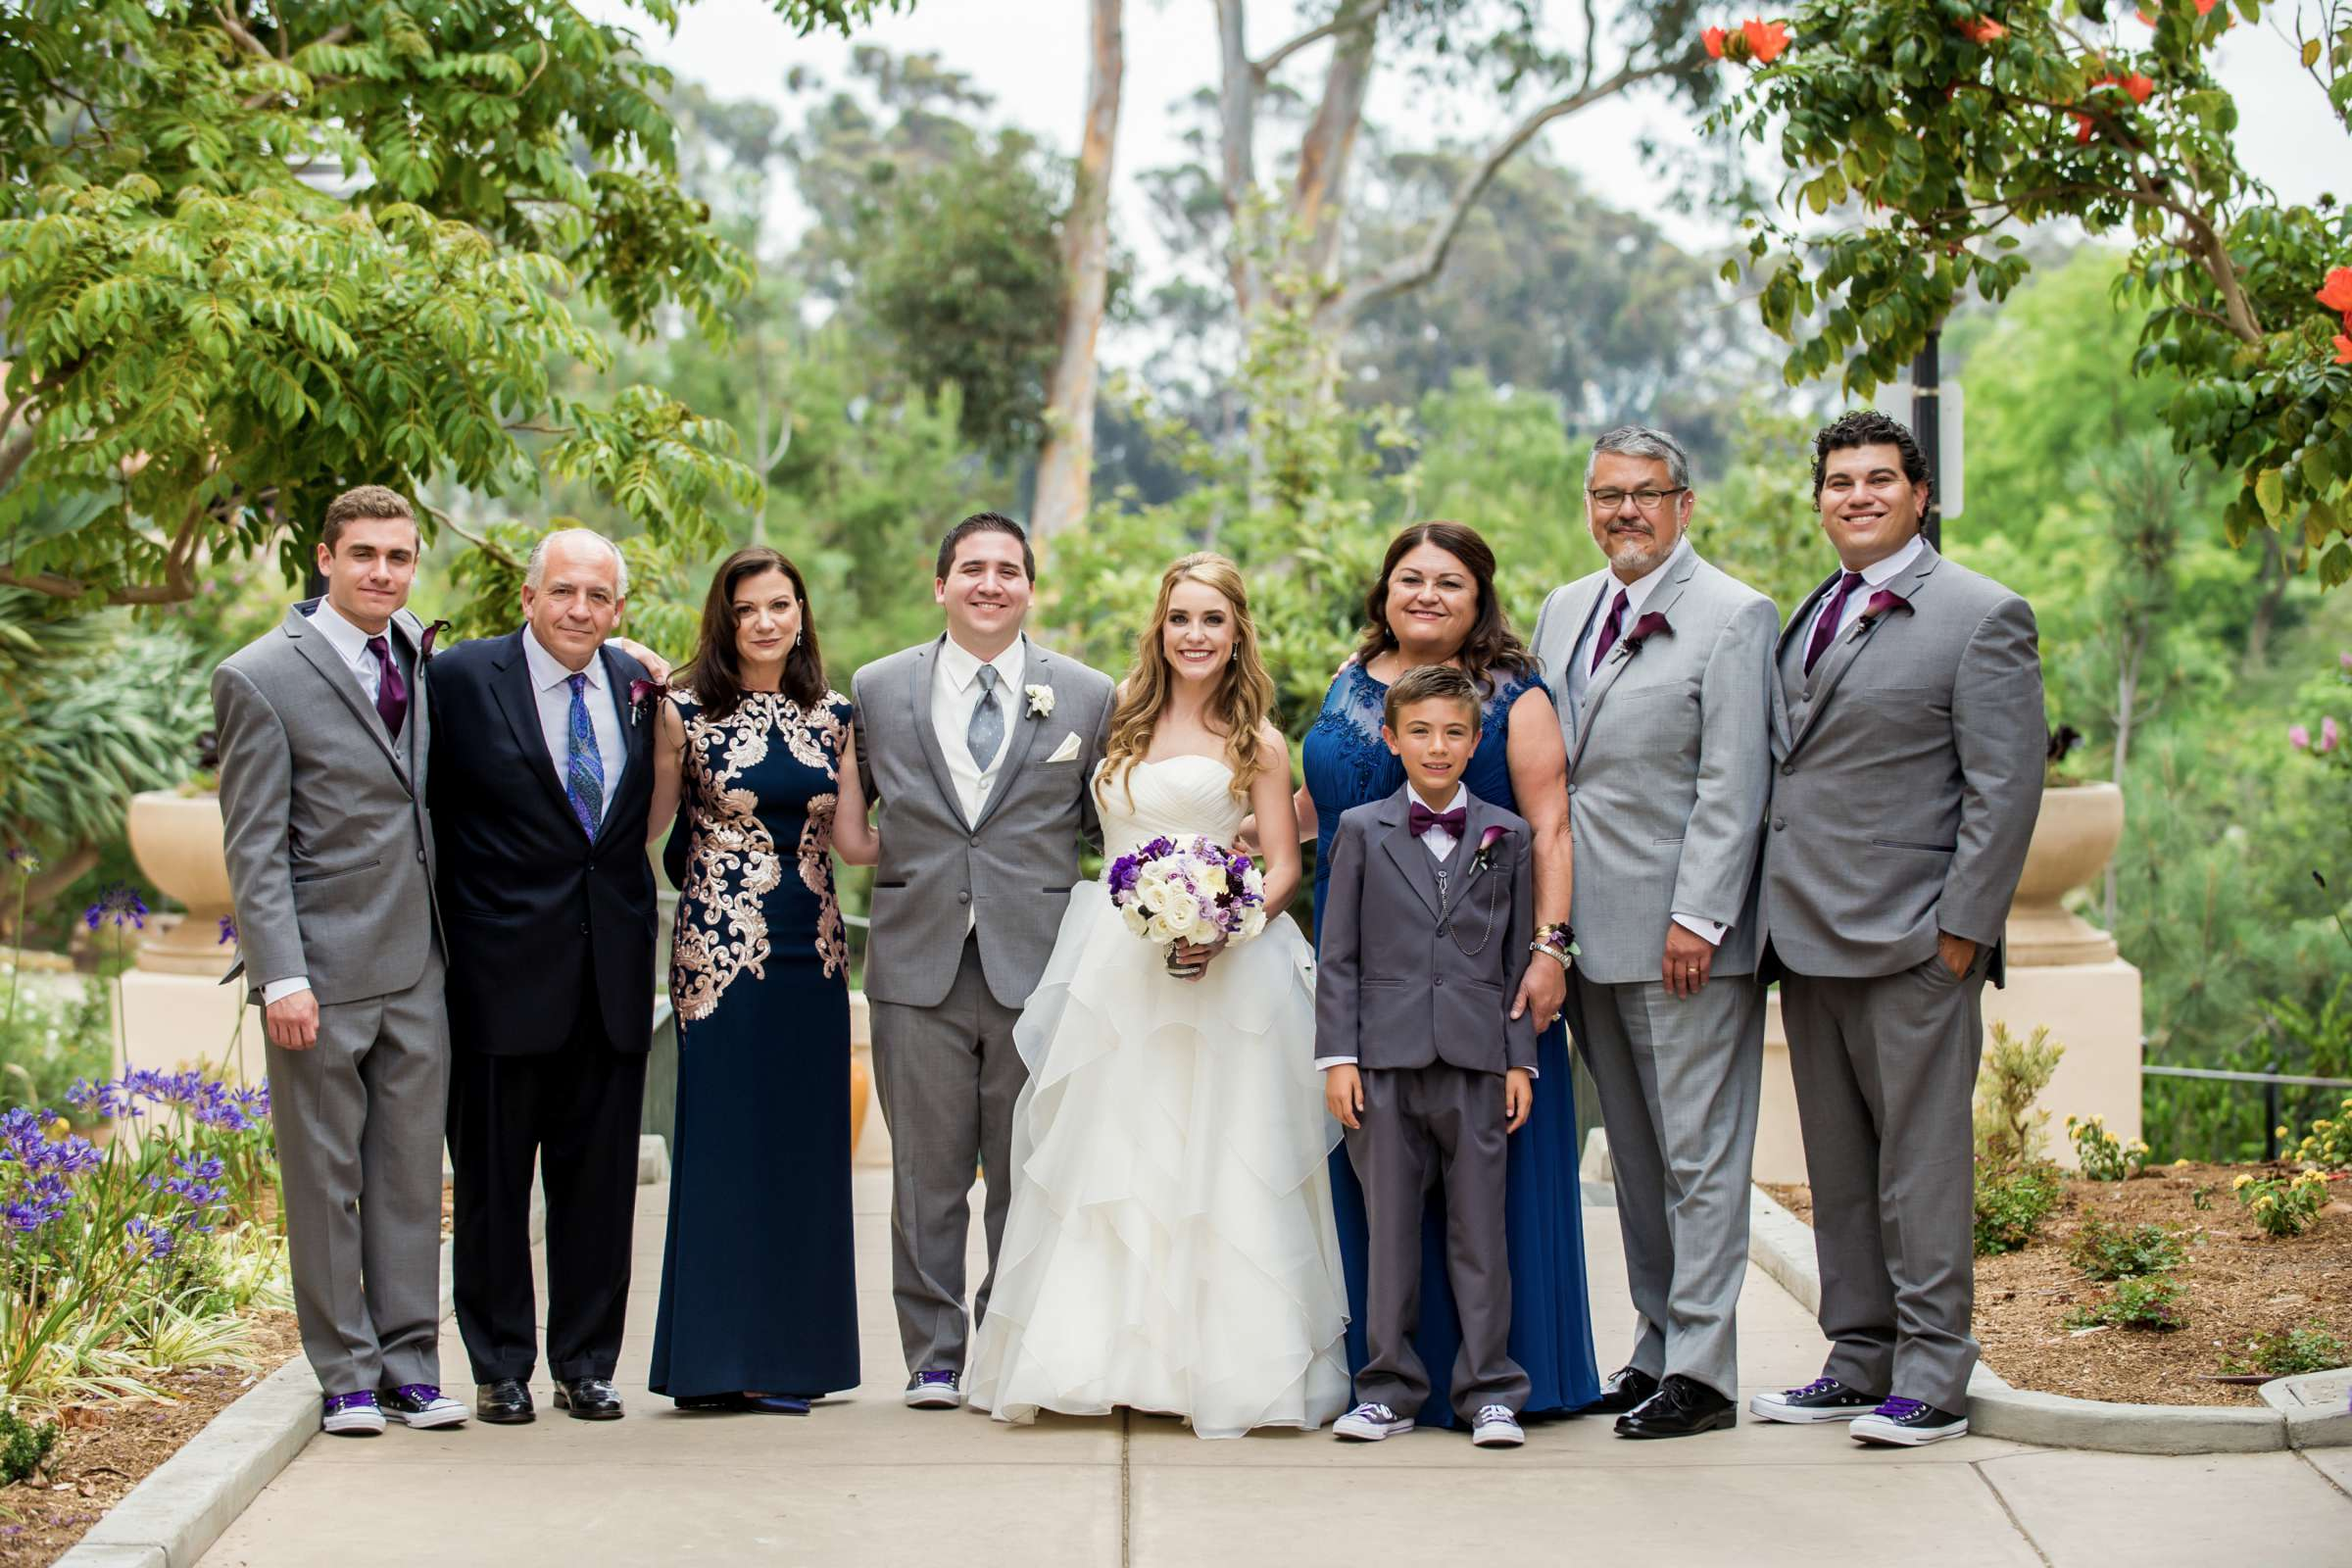 The Prado Wedding coordinated by Victoria Weddings & Events, Melissa and Andrew Wedding Photo #90 by True Photography